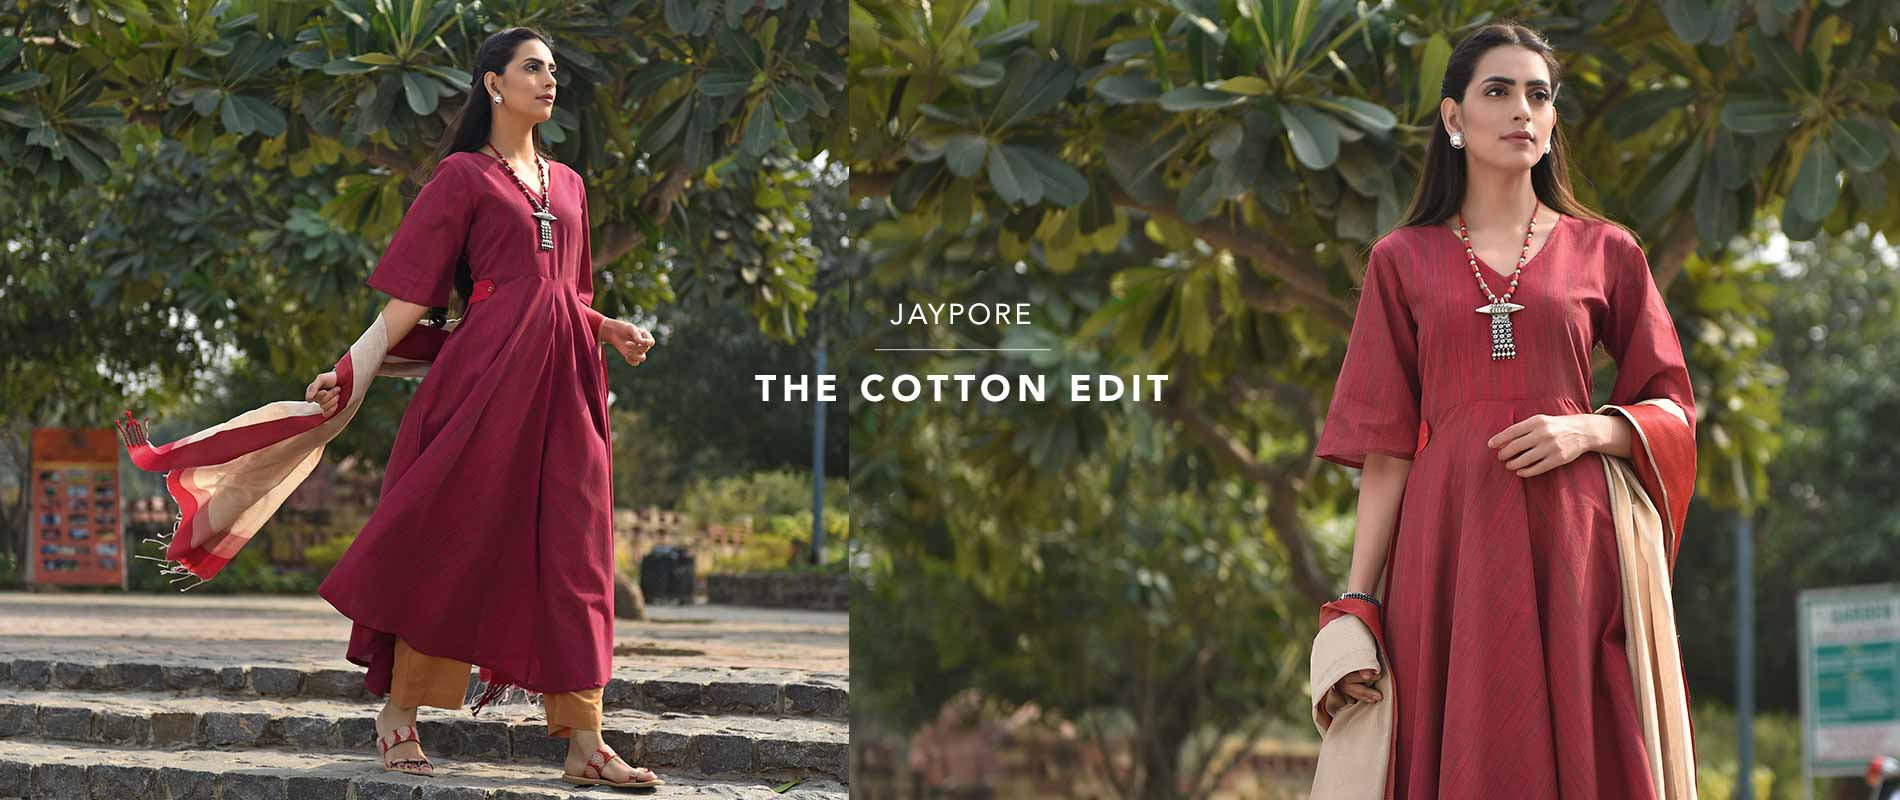 170123JDR023_Jaypore_Dama_Cotton_5618